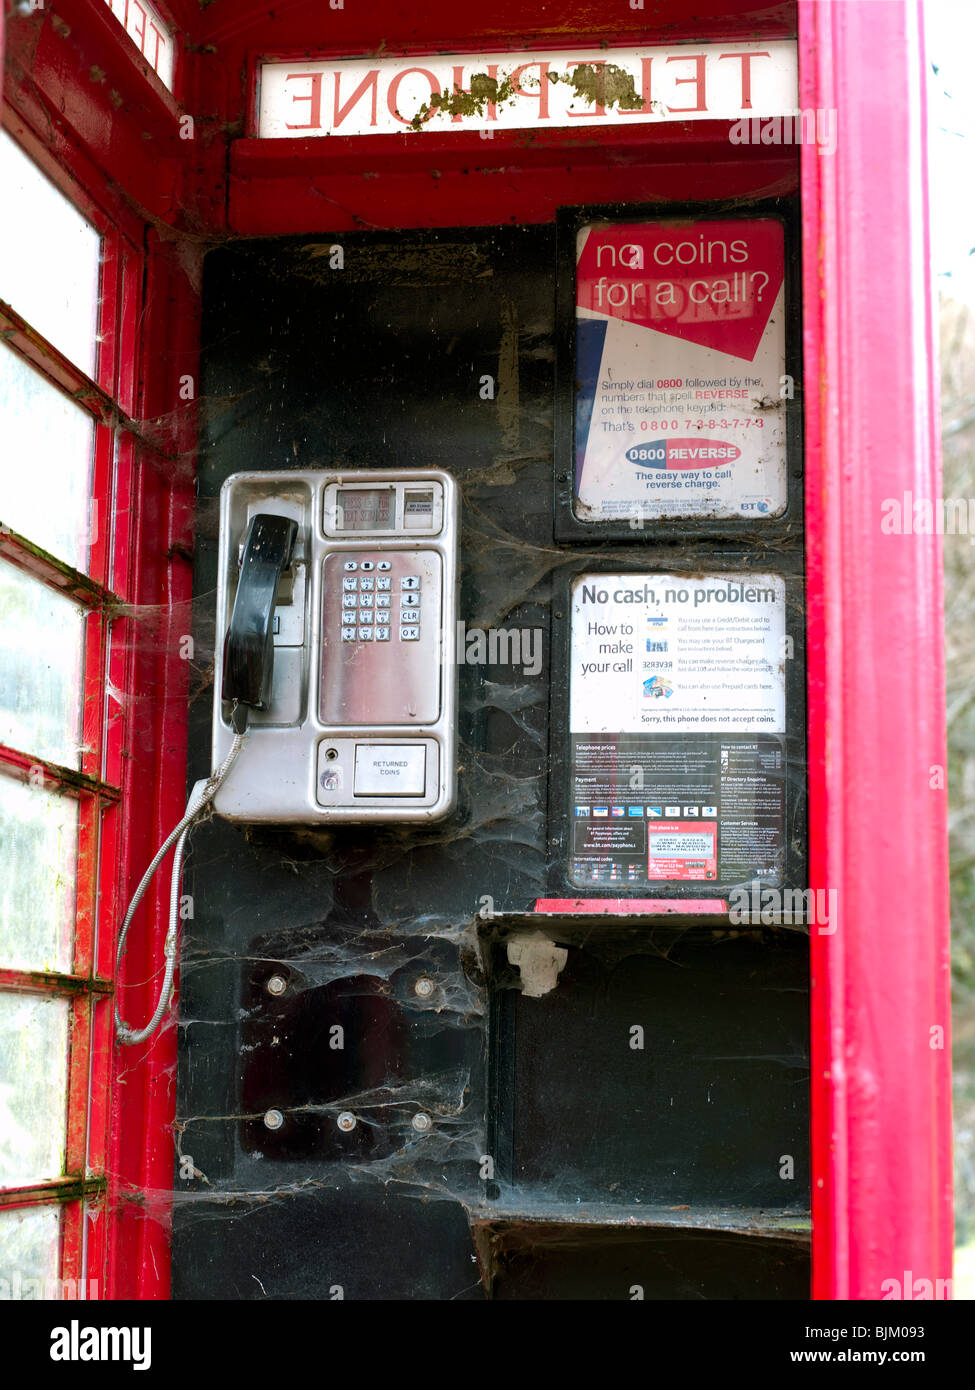 Interior of red telephone box covered in spider webs and showing little sign of recent use or cleaning - Stock Image